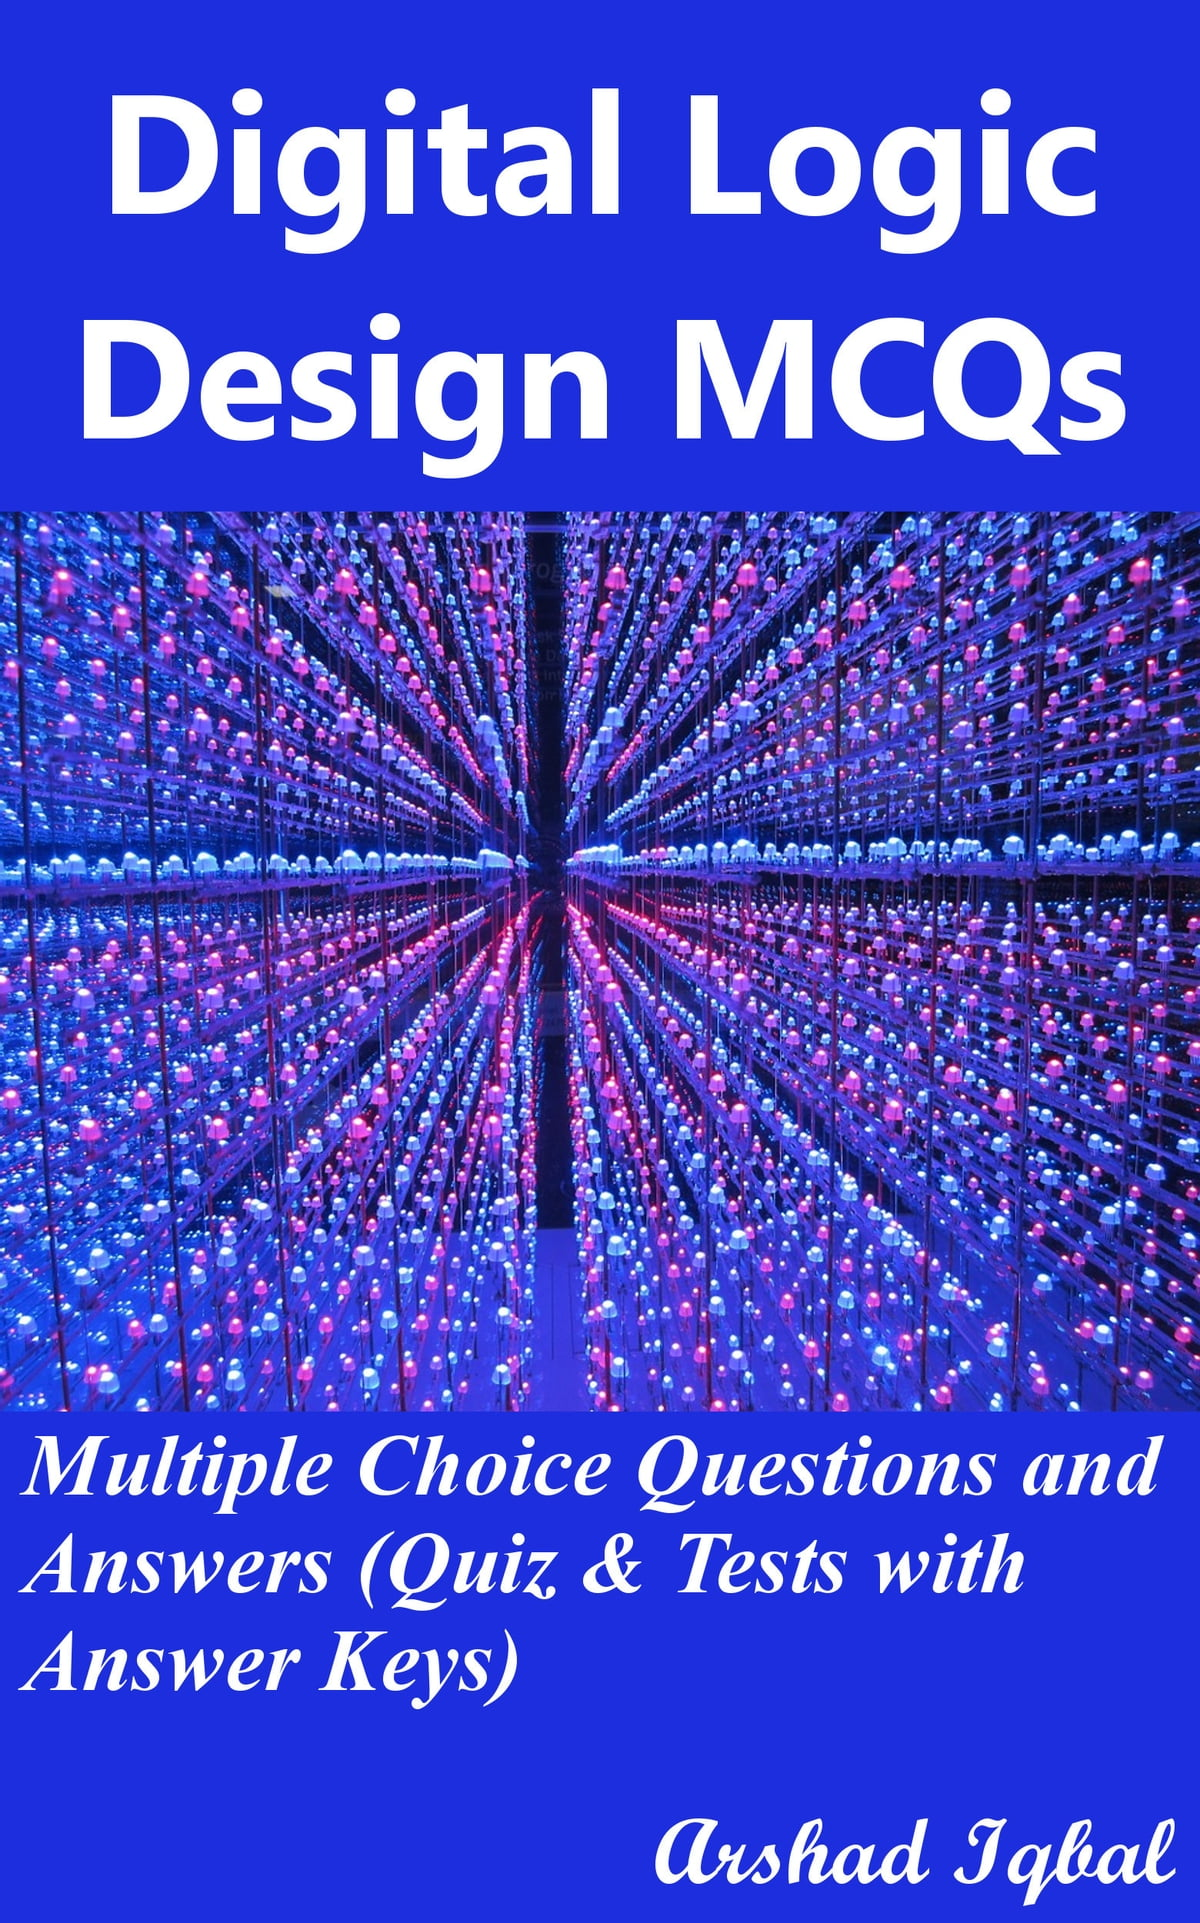 Digital Logic Design Mcqs Multiple Choice Questions And Answers Designing Circuit Quiz Tests With Answer Keys Ebook By Arshad Iqbal 9781311198990 Rakuten Kobo